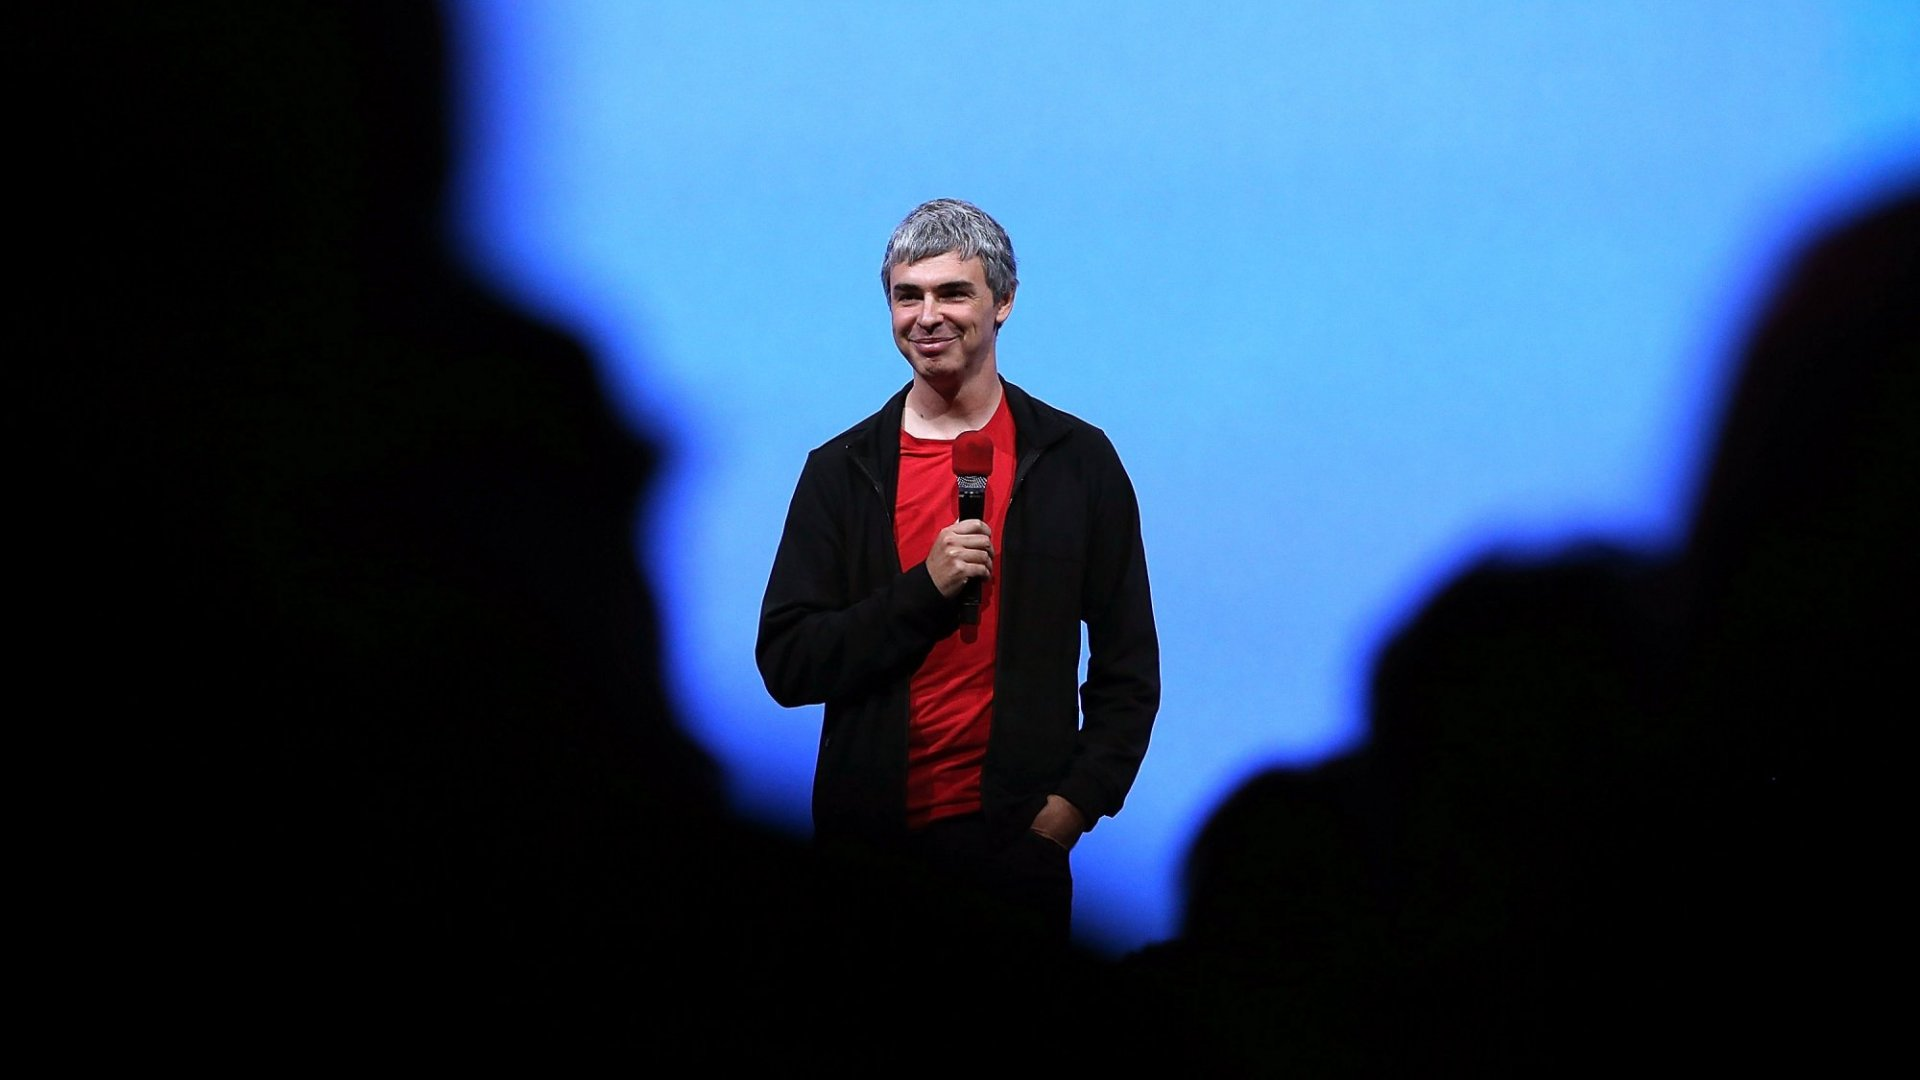 Google Co-Founder Larry Page Just Taught an Essential Lesson in Leadership. Here It Is in 3 Words